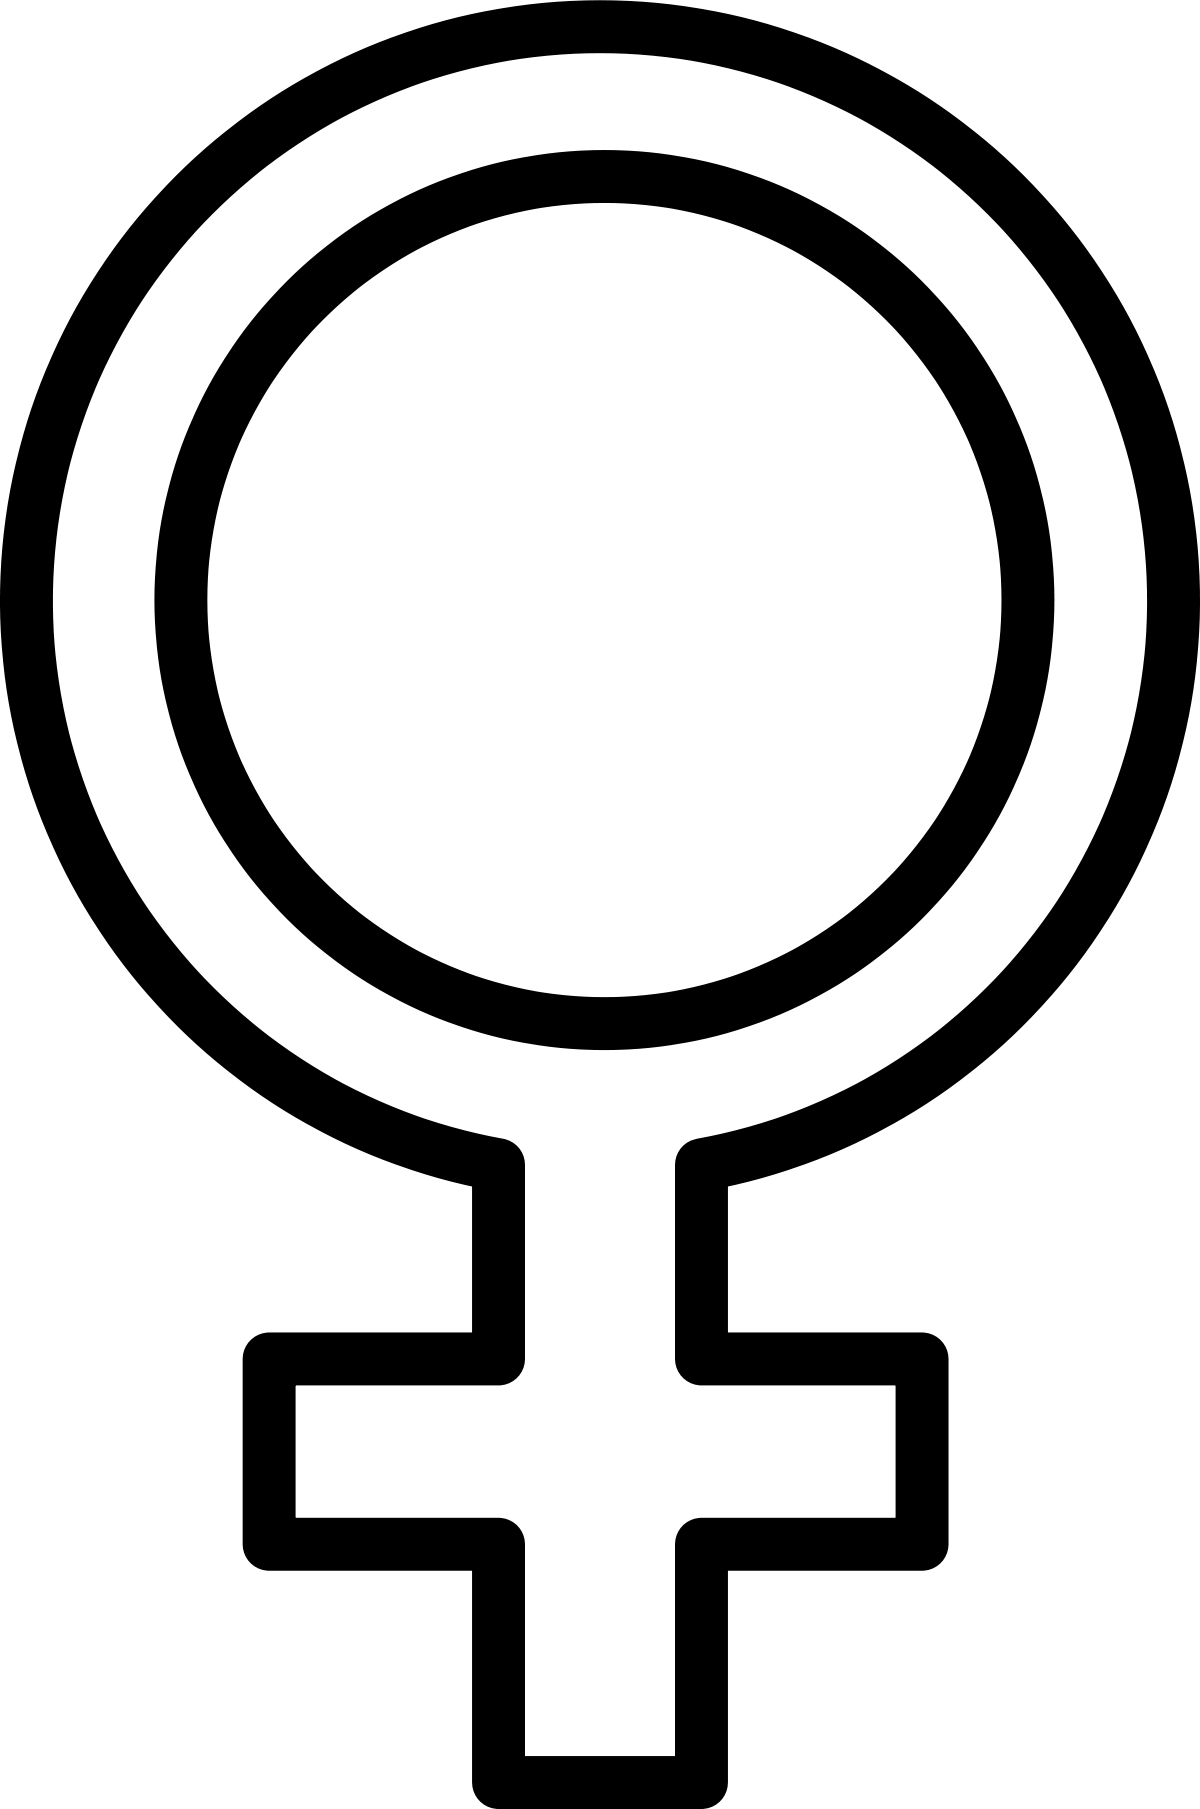 Clipart definition female reproductive system. Human sexuality wikipedia